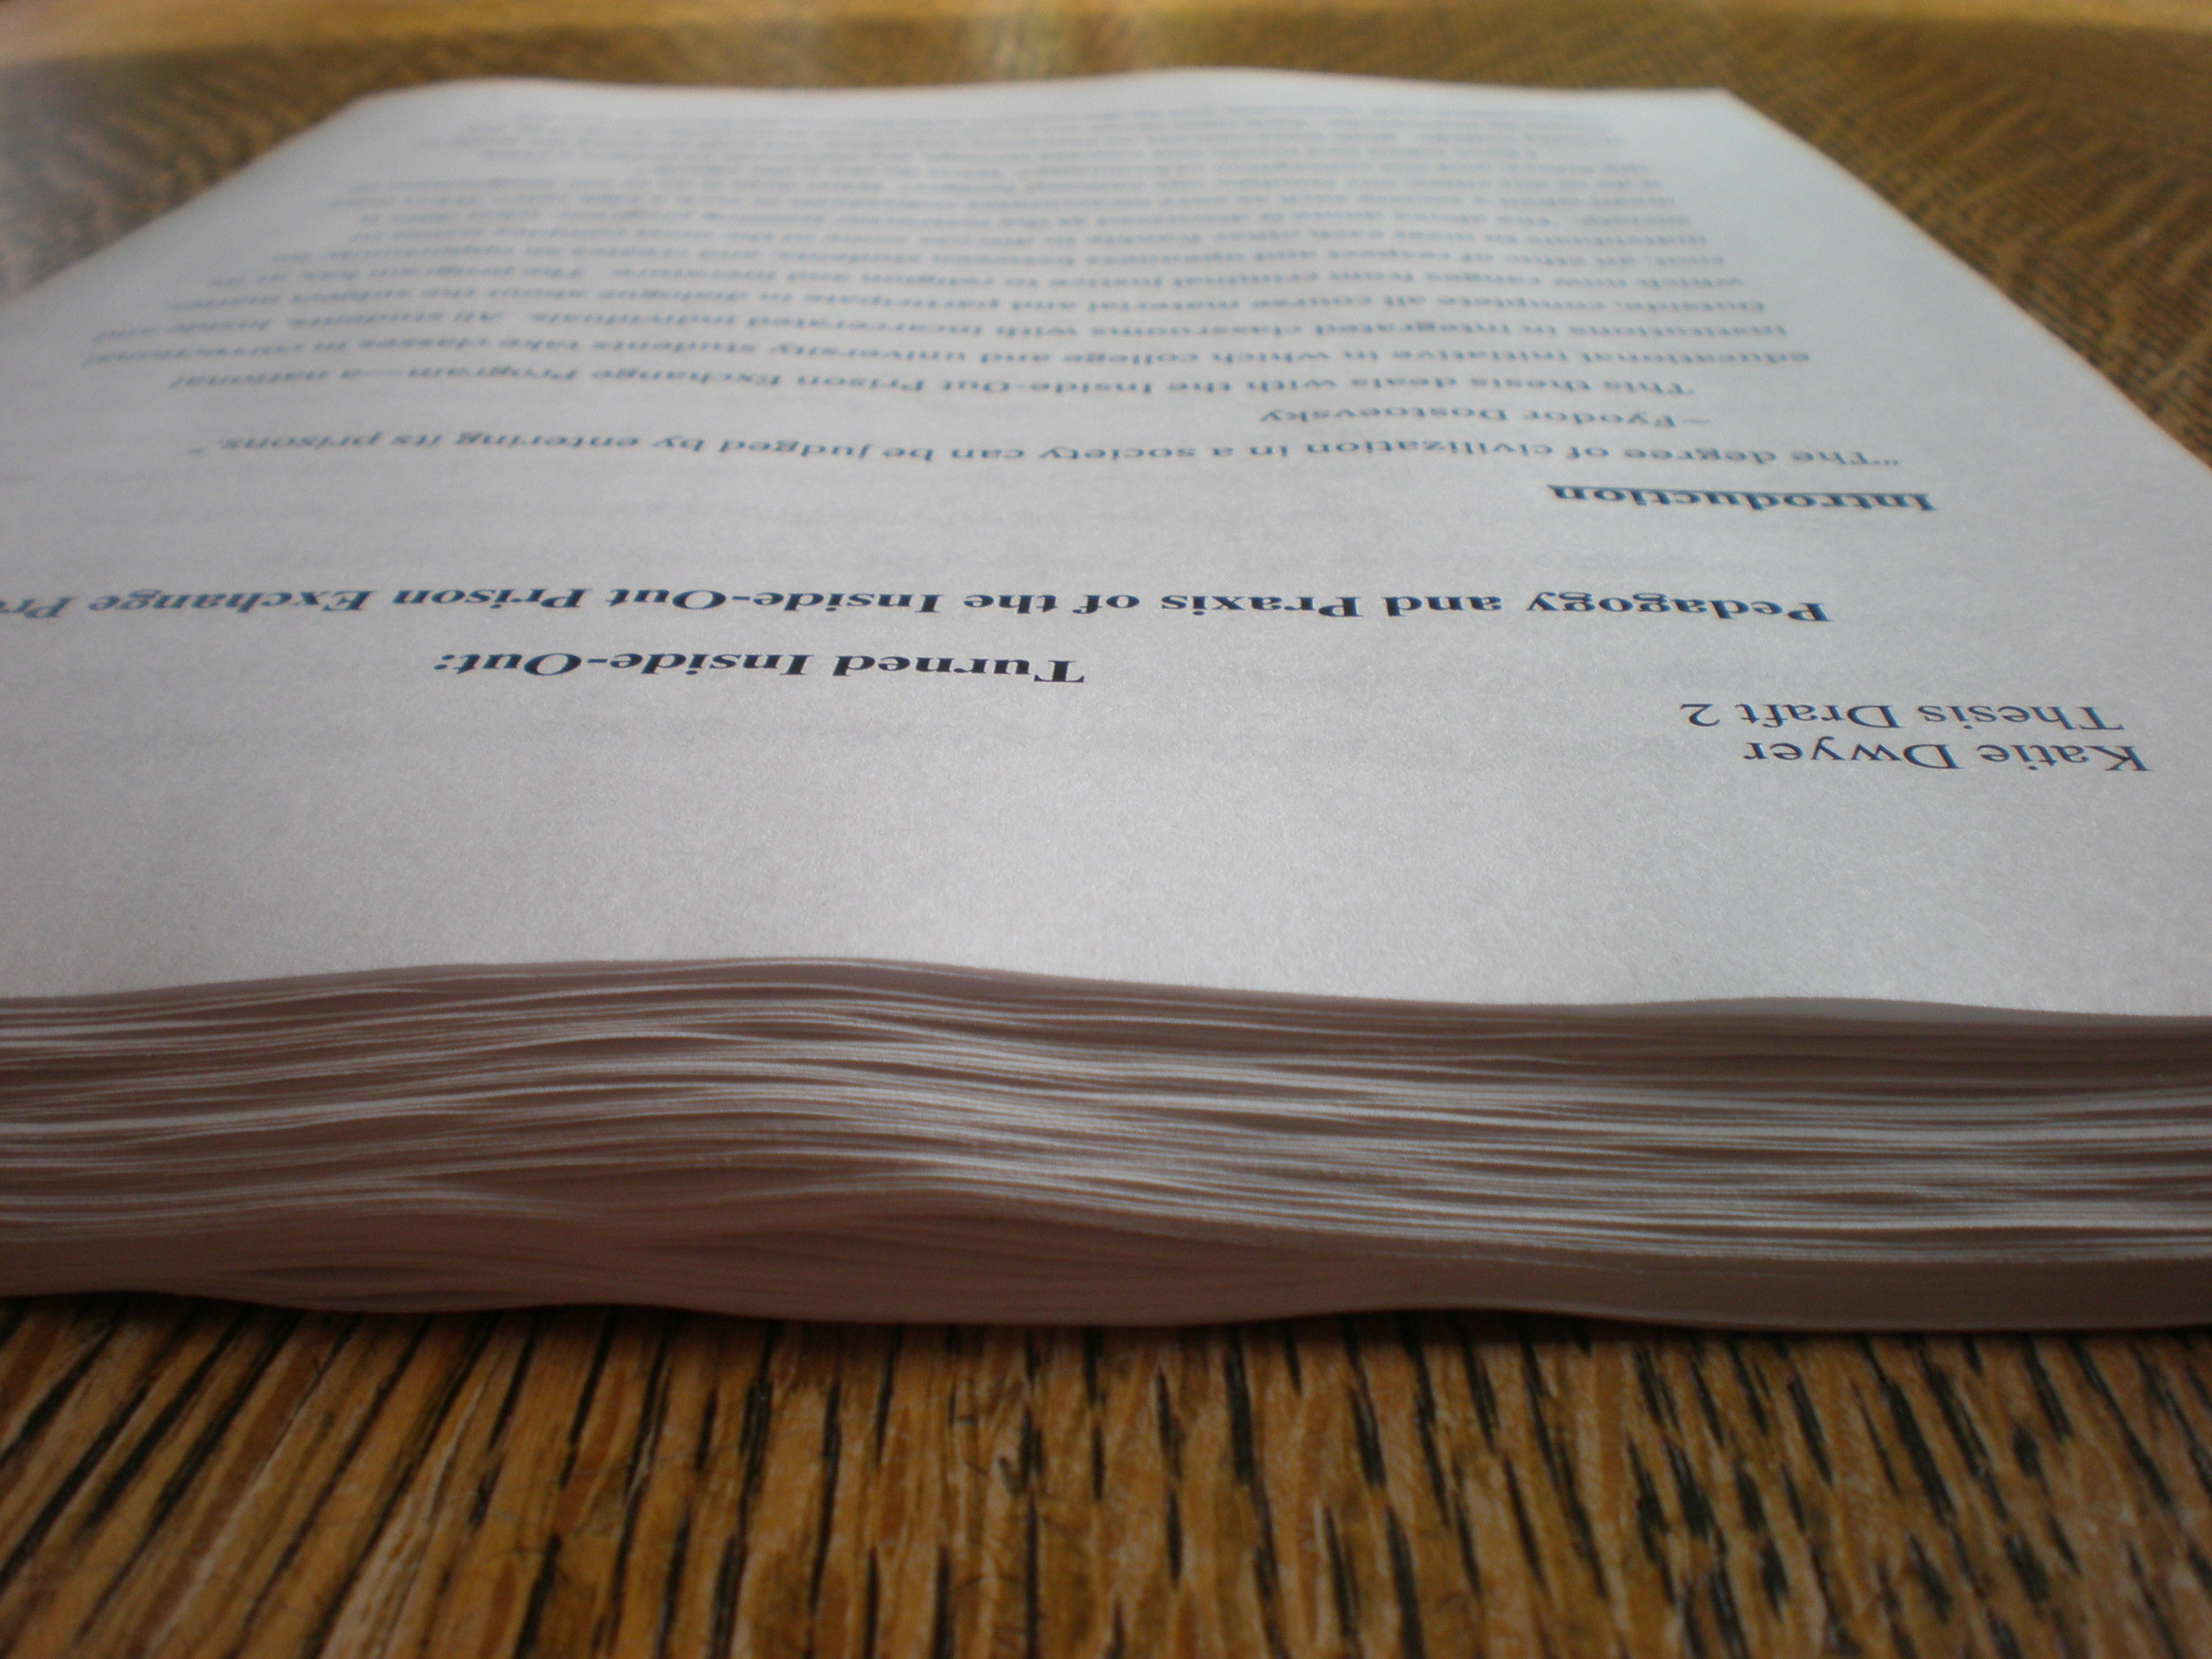 The first fully-printed draft of my undergraduate thesis.